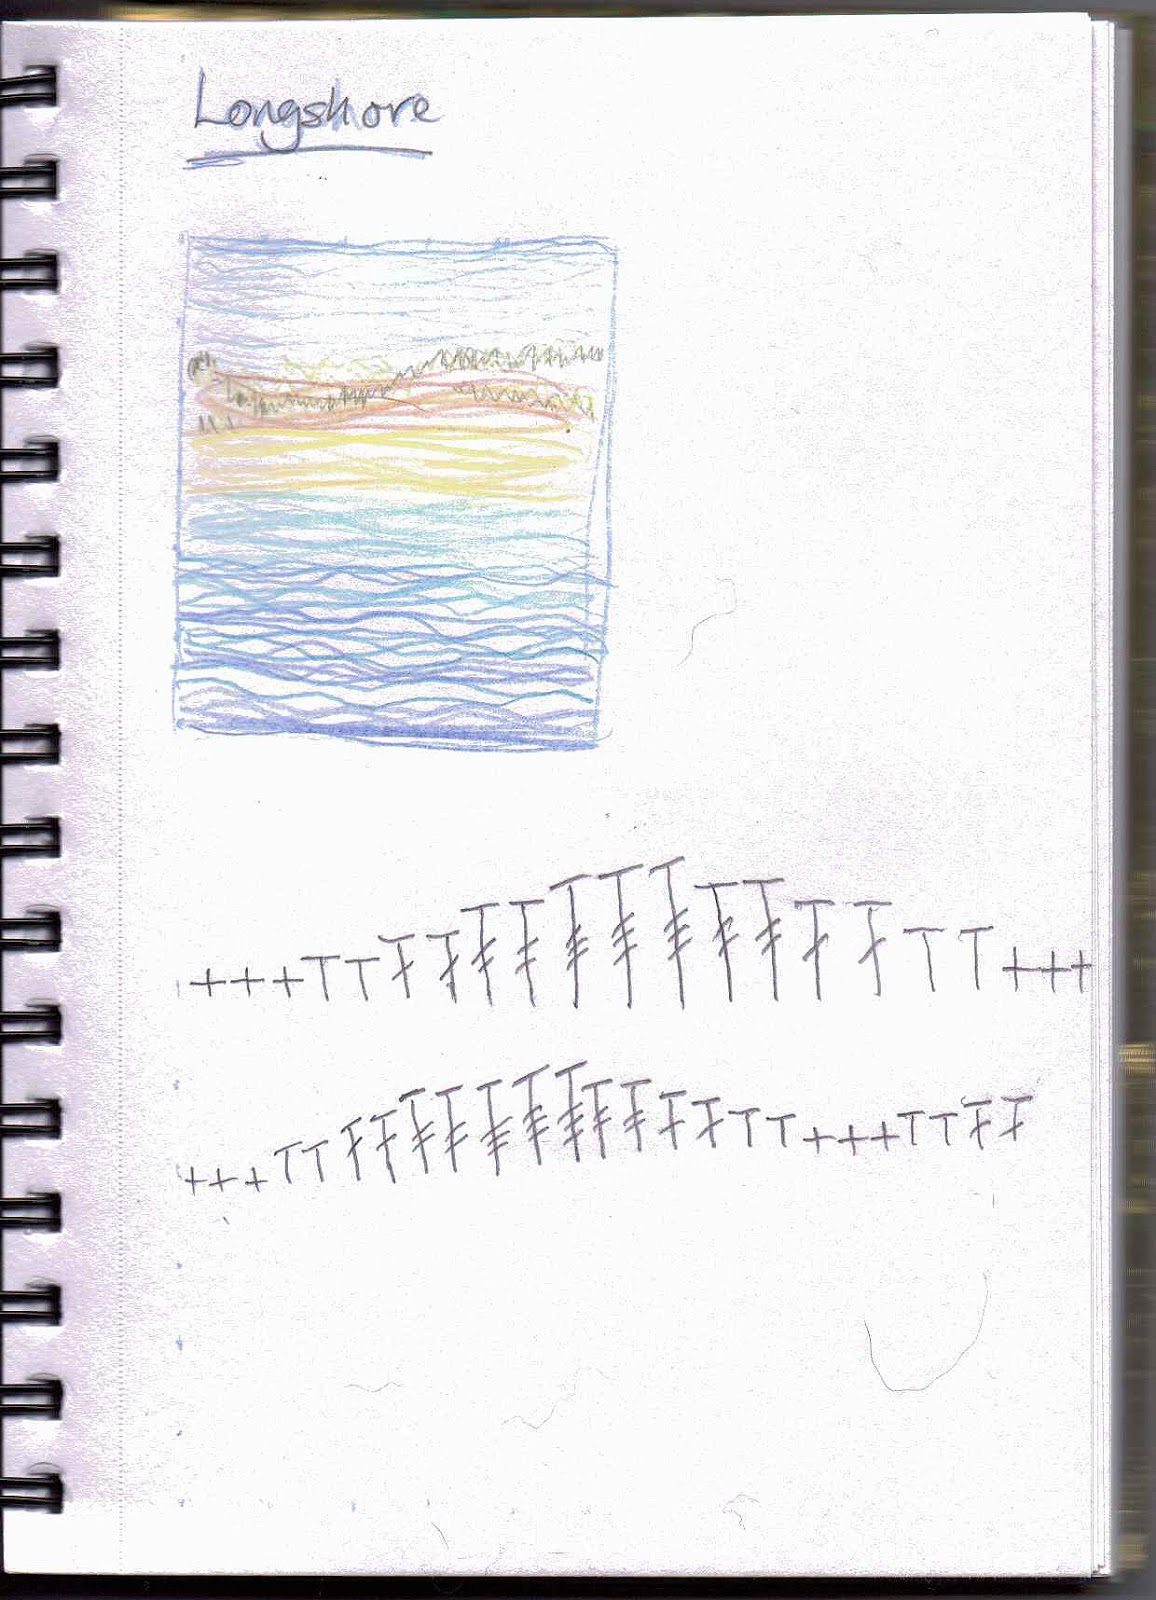 sketch of the longshore picture and crochet wave symbols